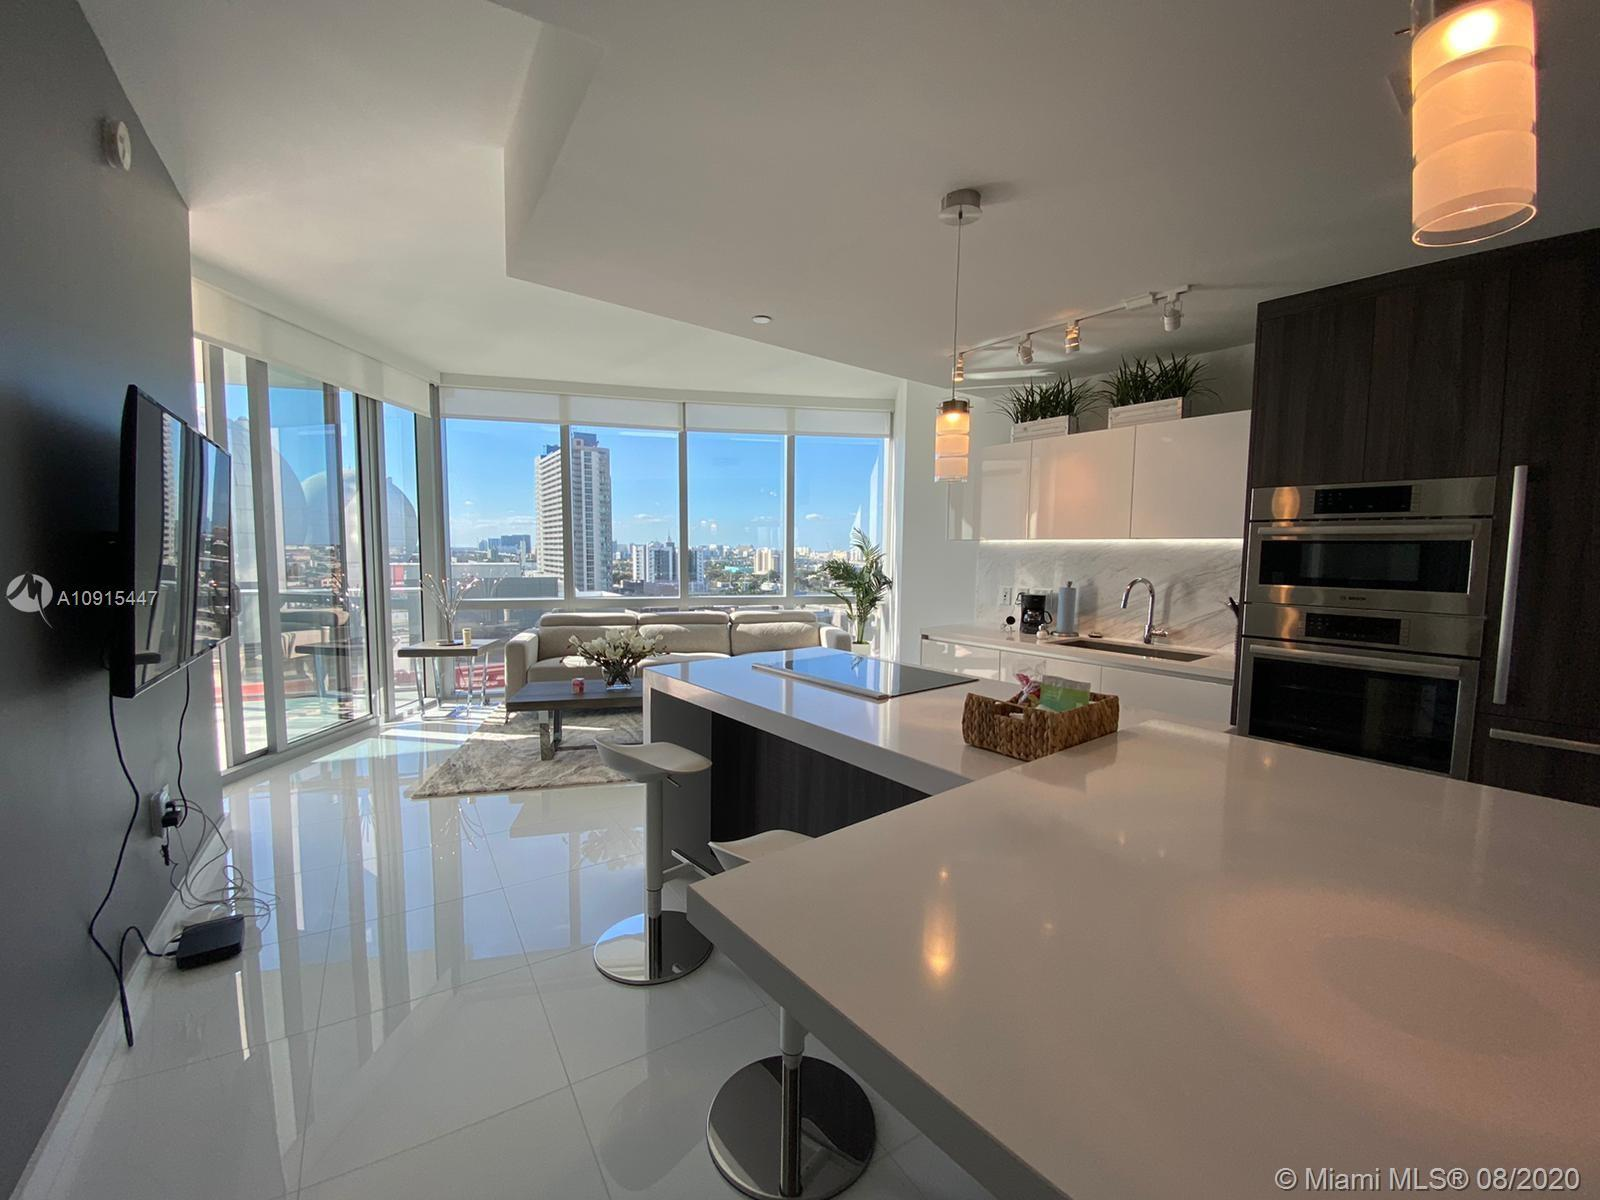 Beautiful 1 Bed + DEN /2 Baths at PARAMOUNT MIAMI. LUXURY PRESTIGIOUS apartment with a private entra